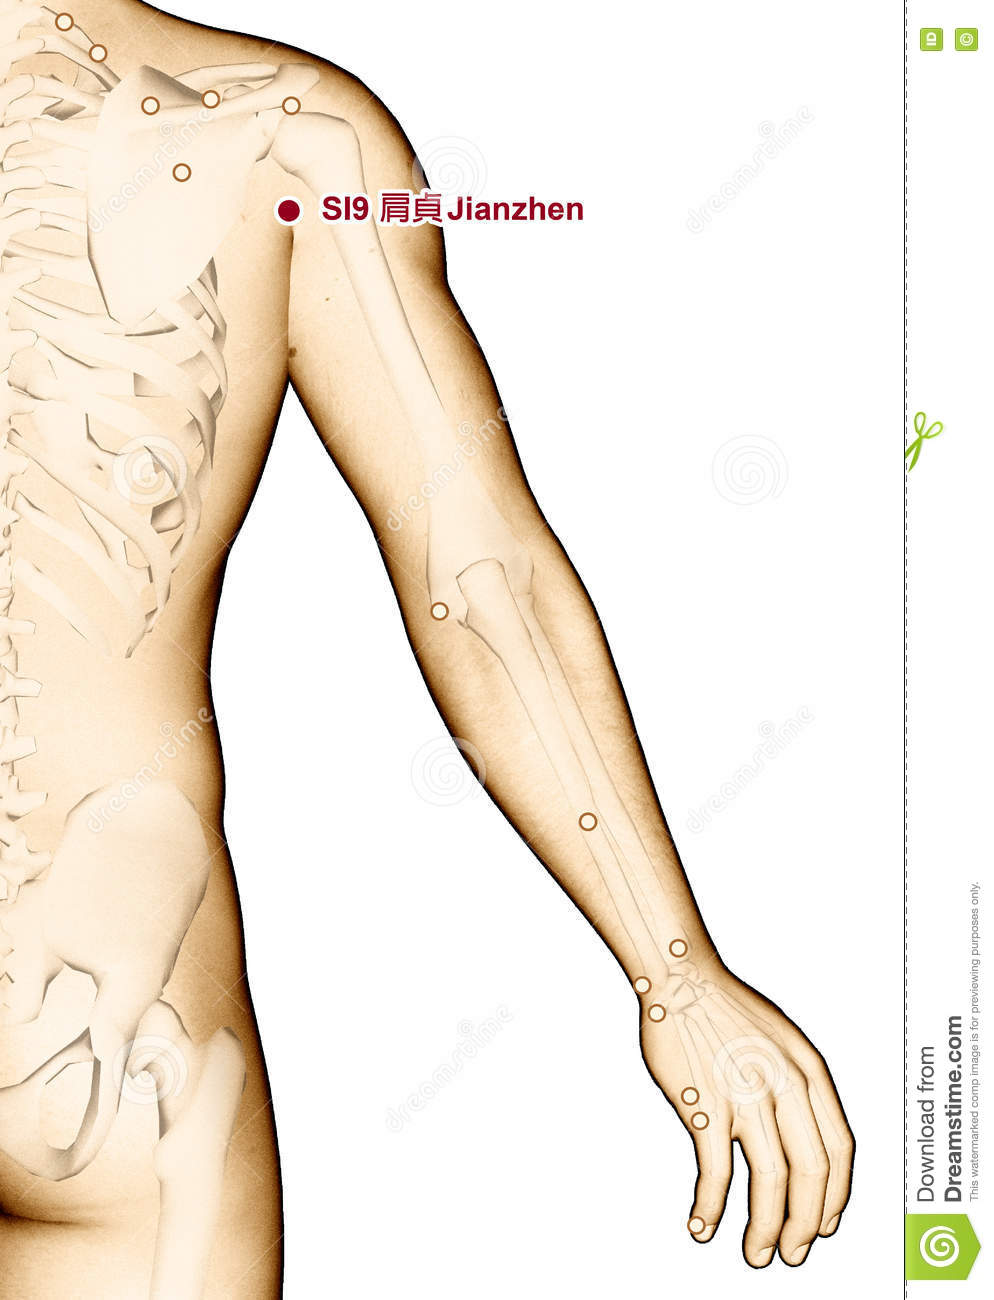 Drawing Acupuncture Point SI9 Jianzhen, 3D Illustration Stock